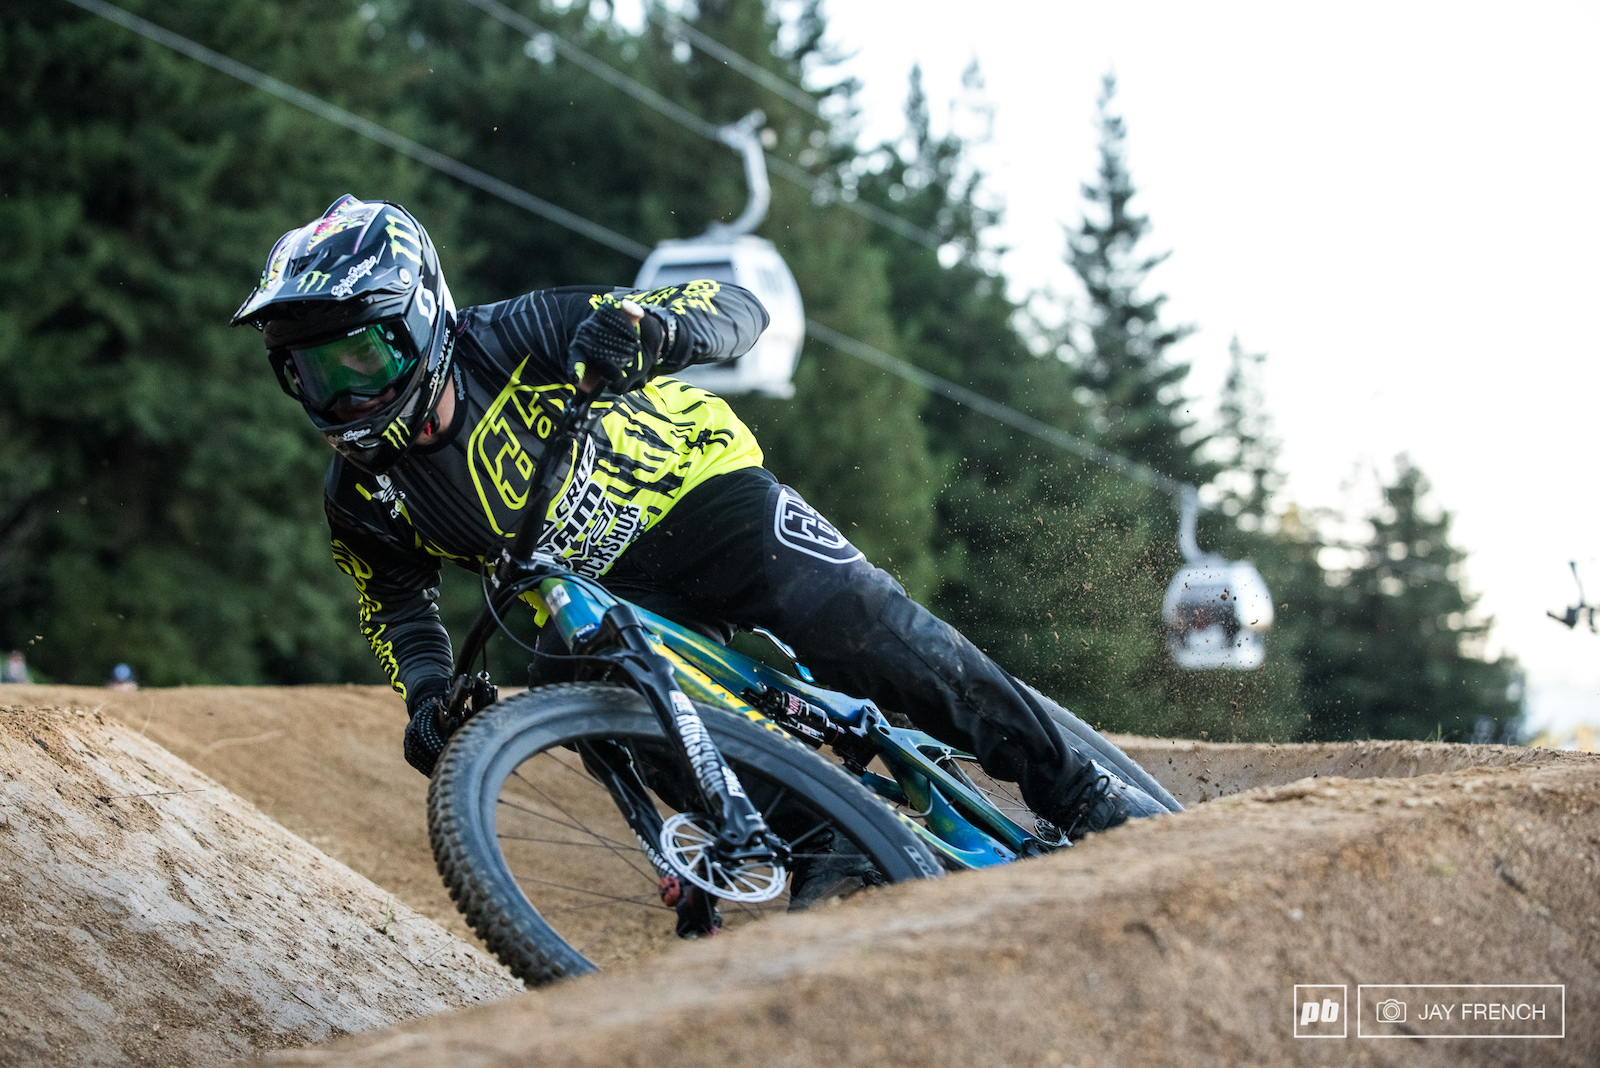 Mitch gets a little roost going in the berms.